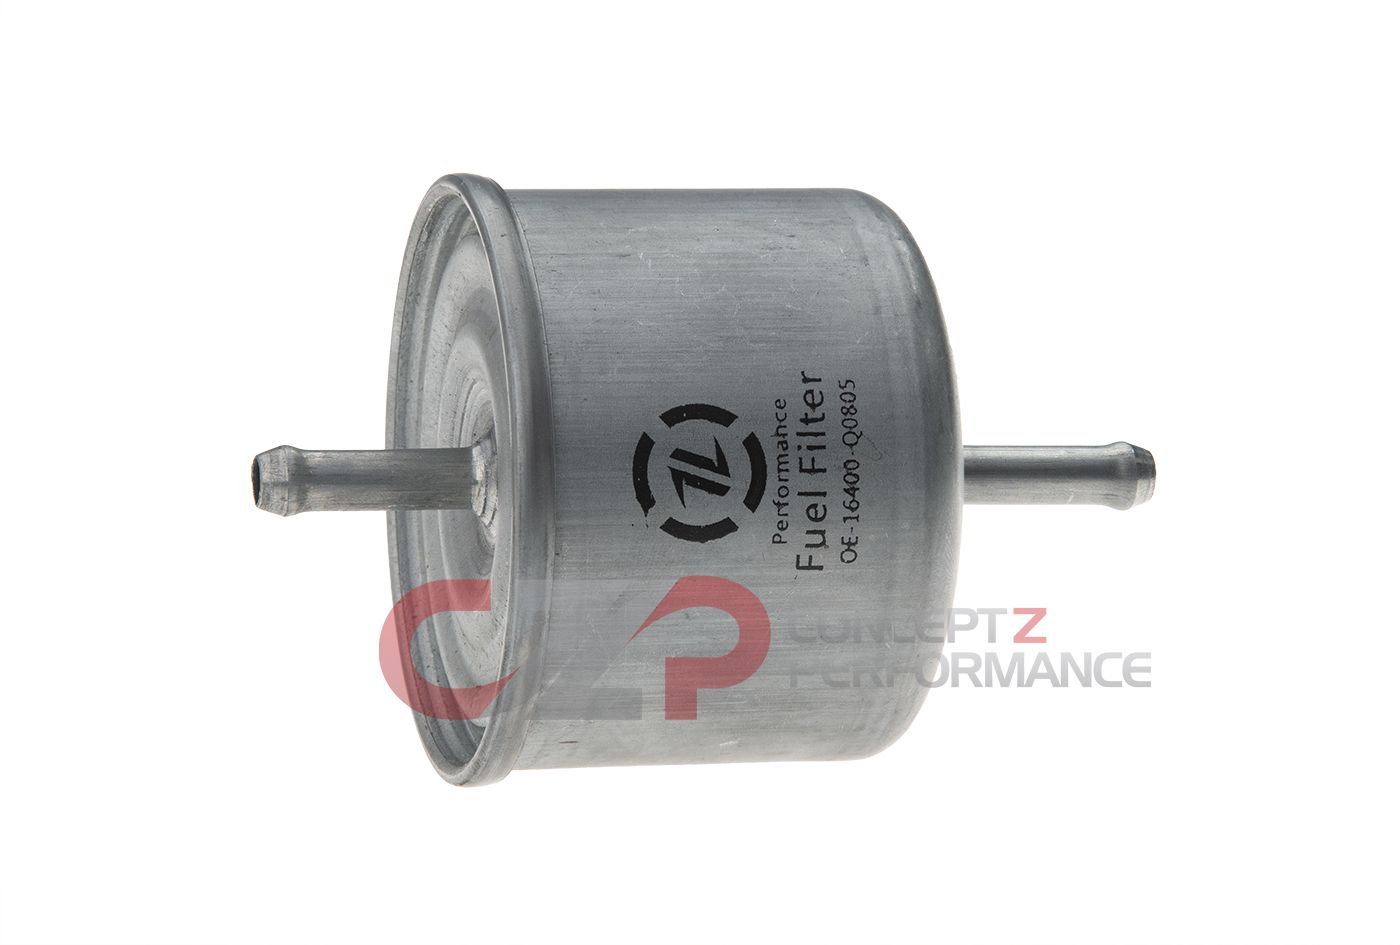 ISR Performance OE Replacement Fuel Filter - Nissan 300ZX Z32 / 240SX SR20DET S13 S14 S15